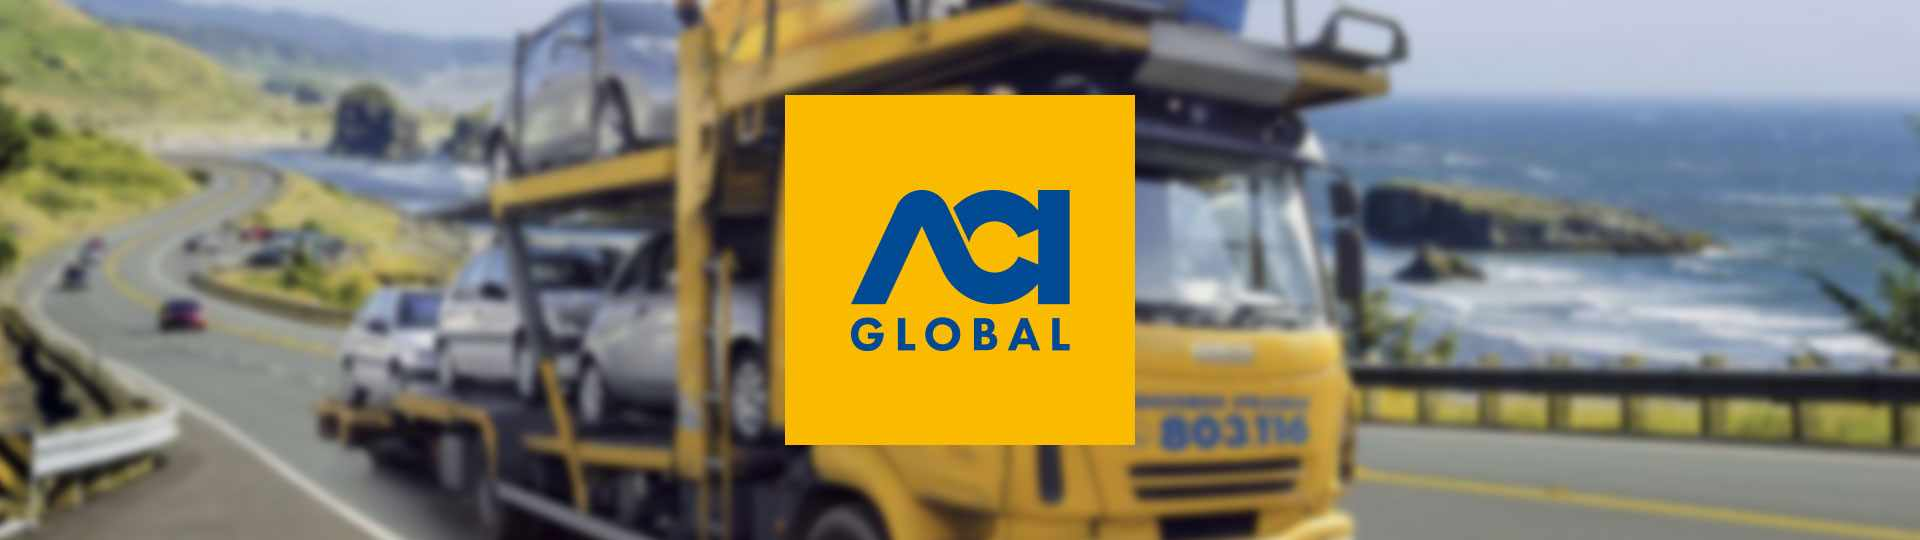 header_aci_global_bonera_group.jpg